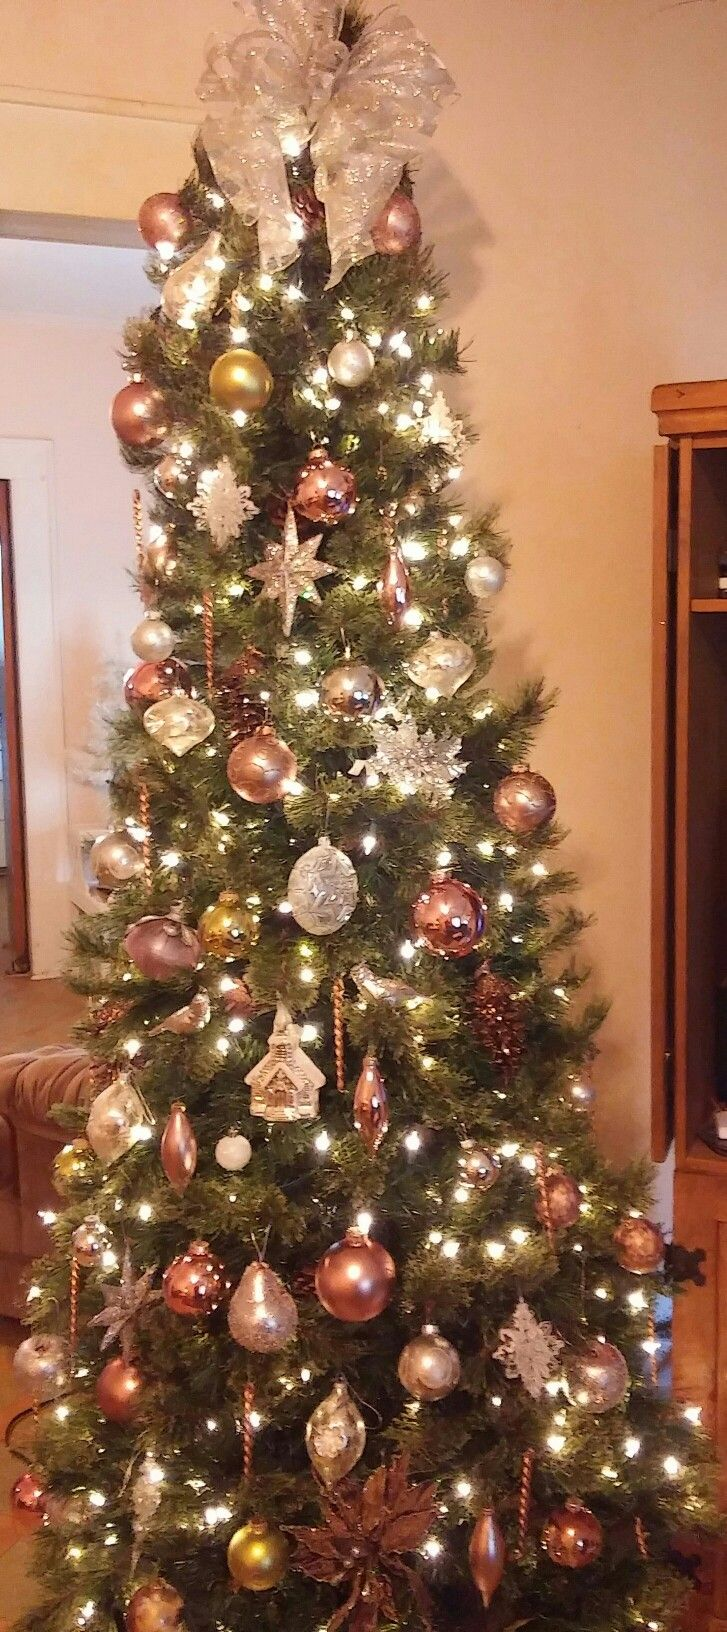 Lovin this victorian style Christmas tree in pinks silver and champagne and white